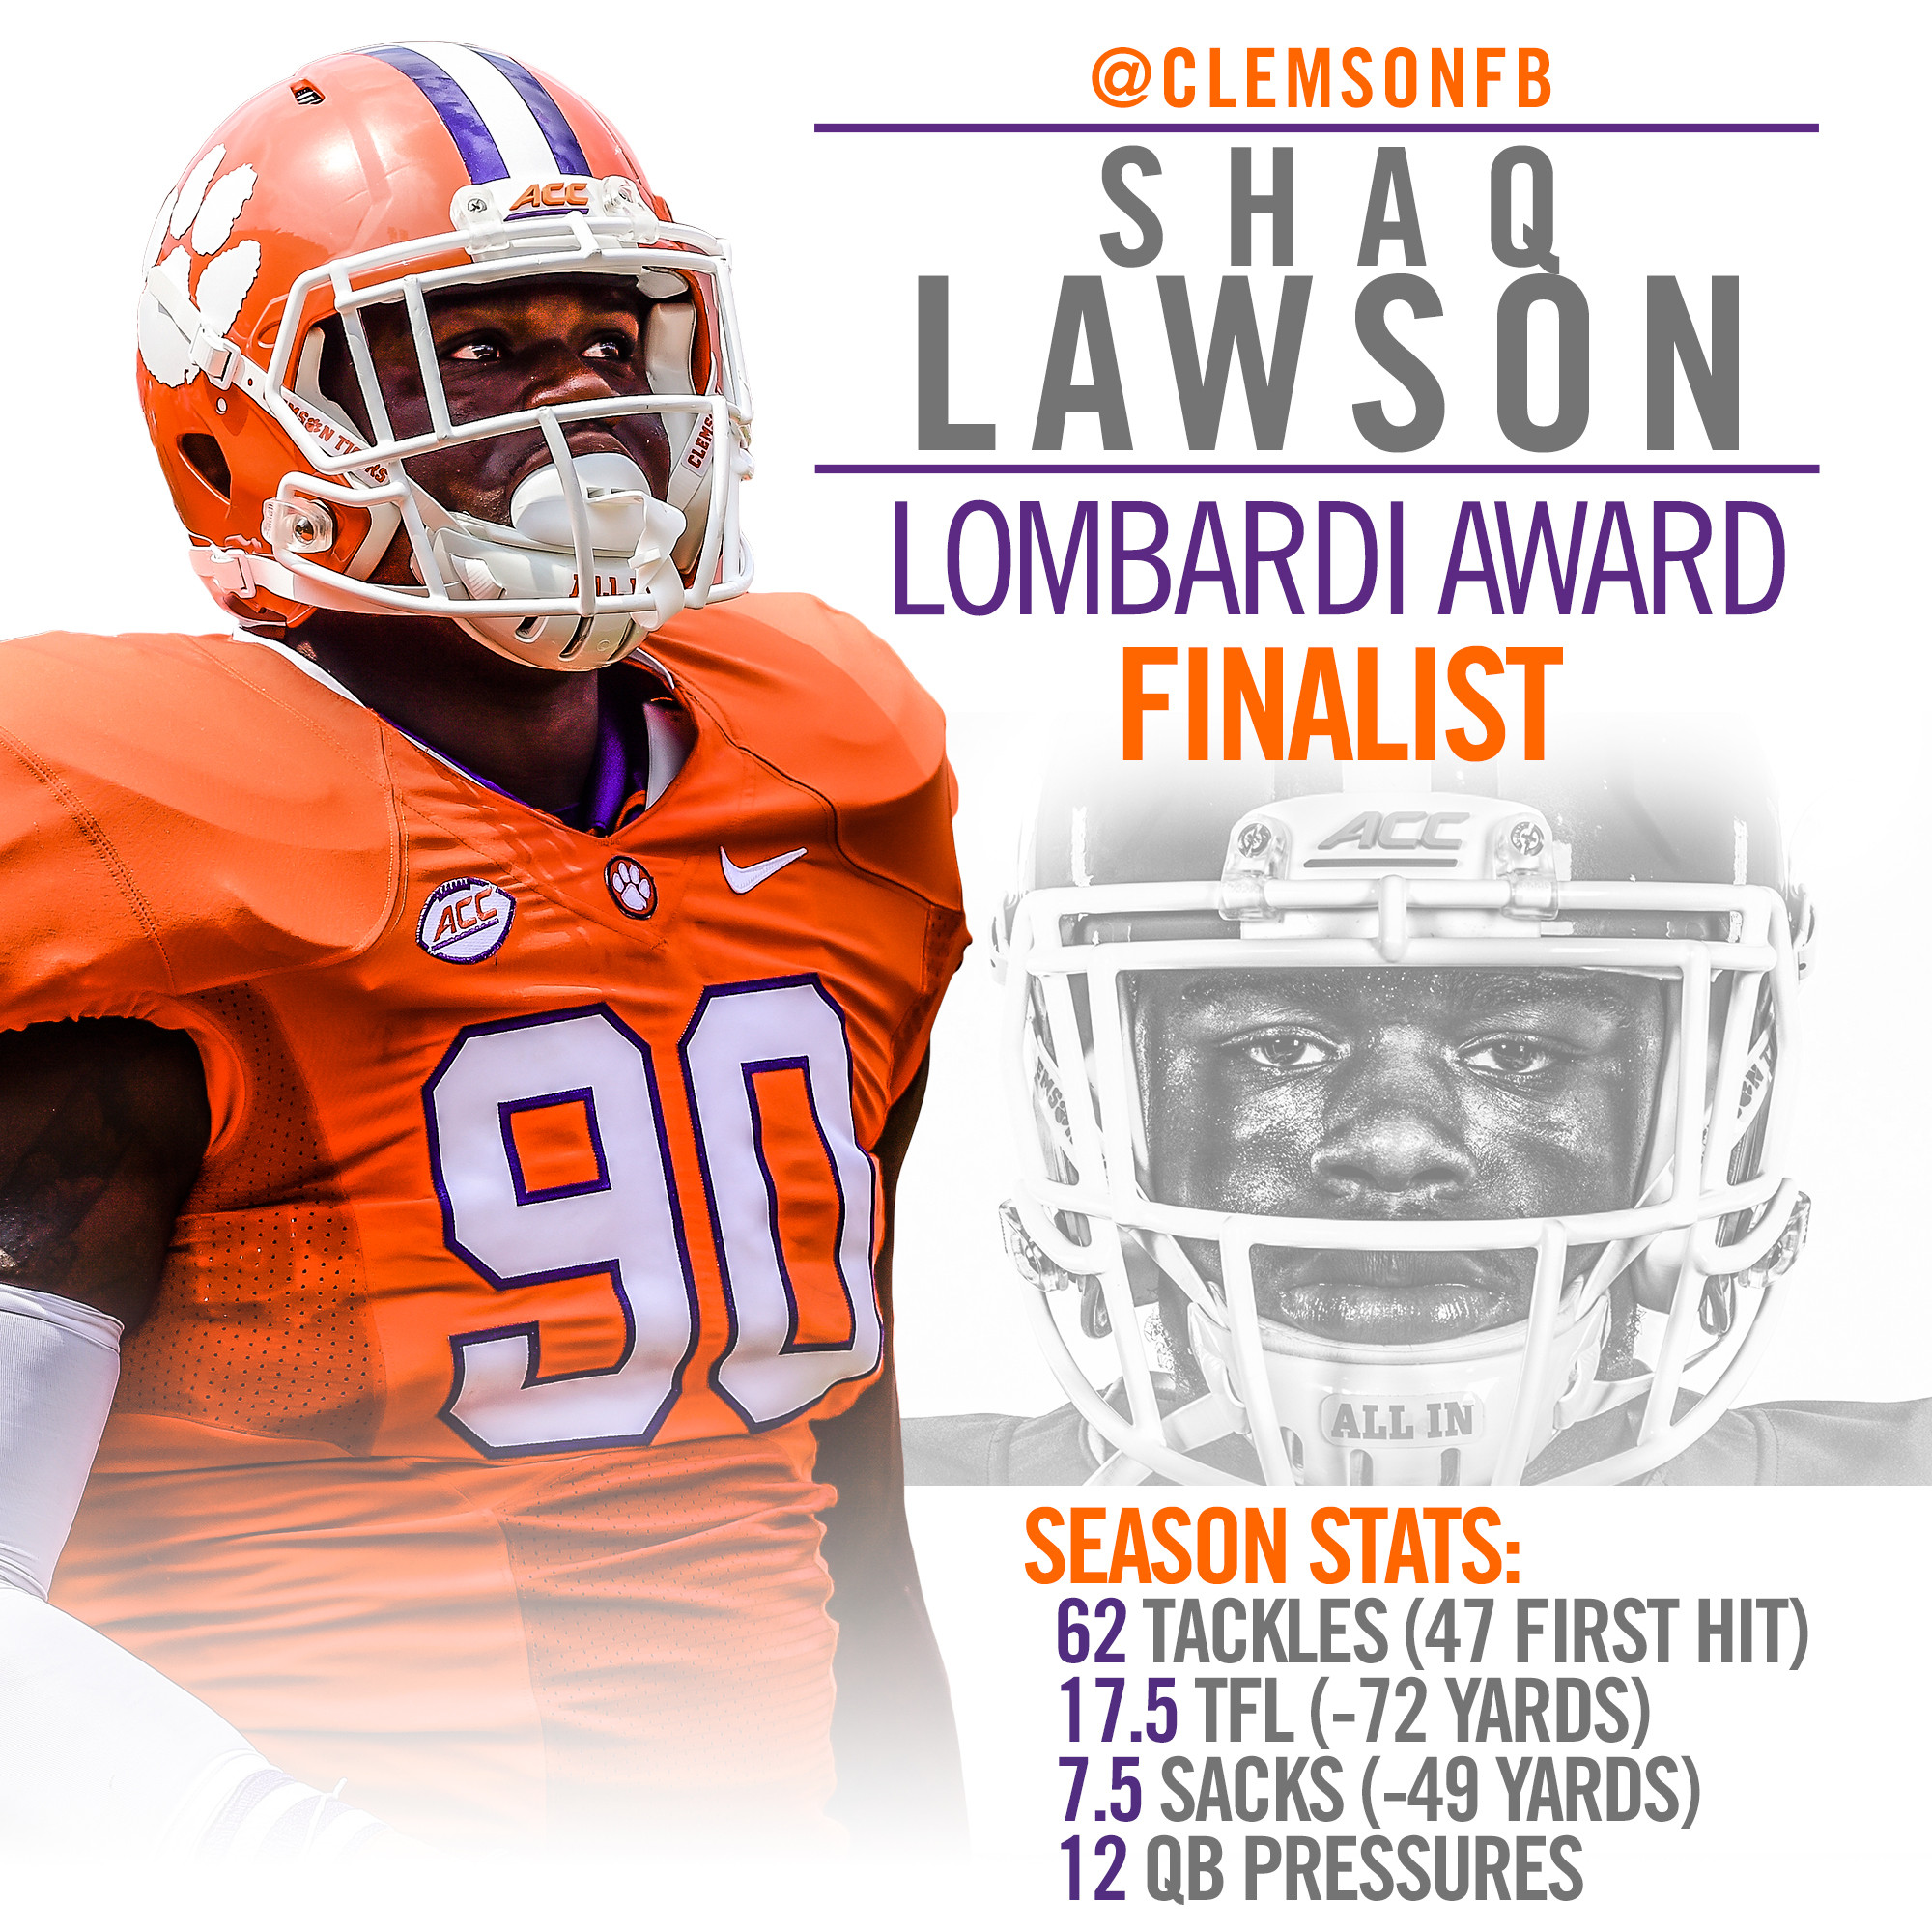 Lawson Named Lombardi Award Finalist